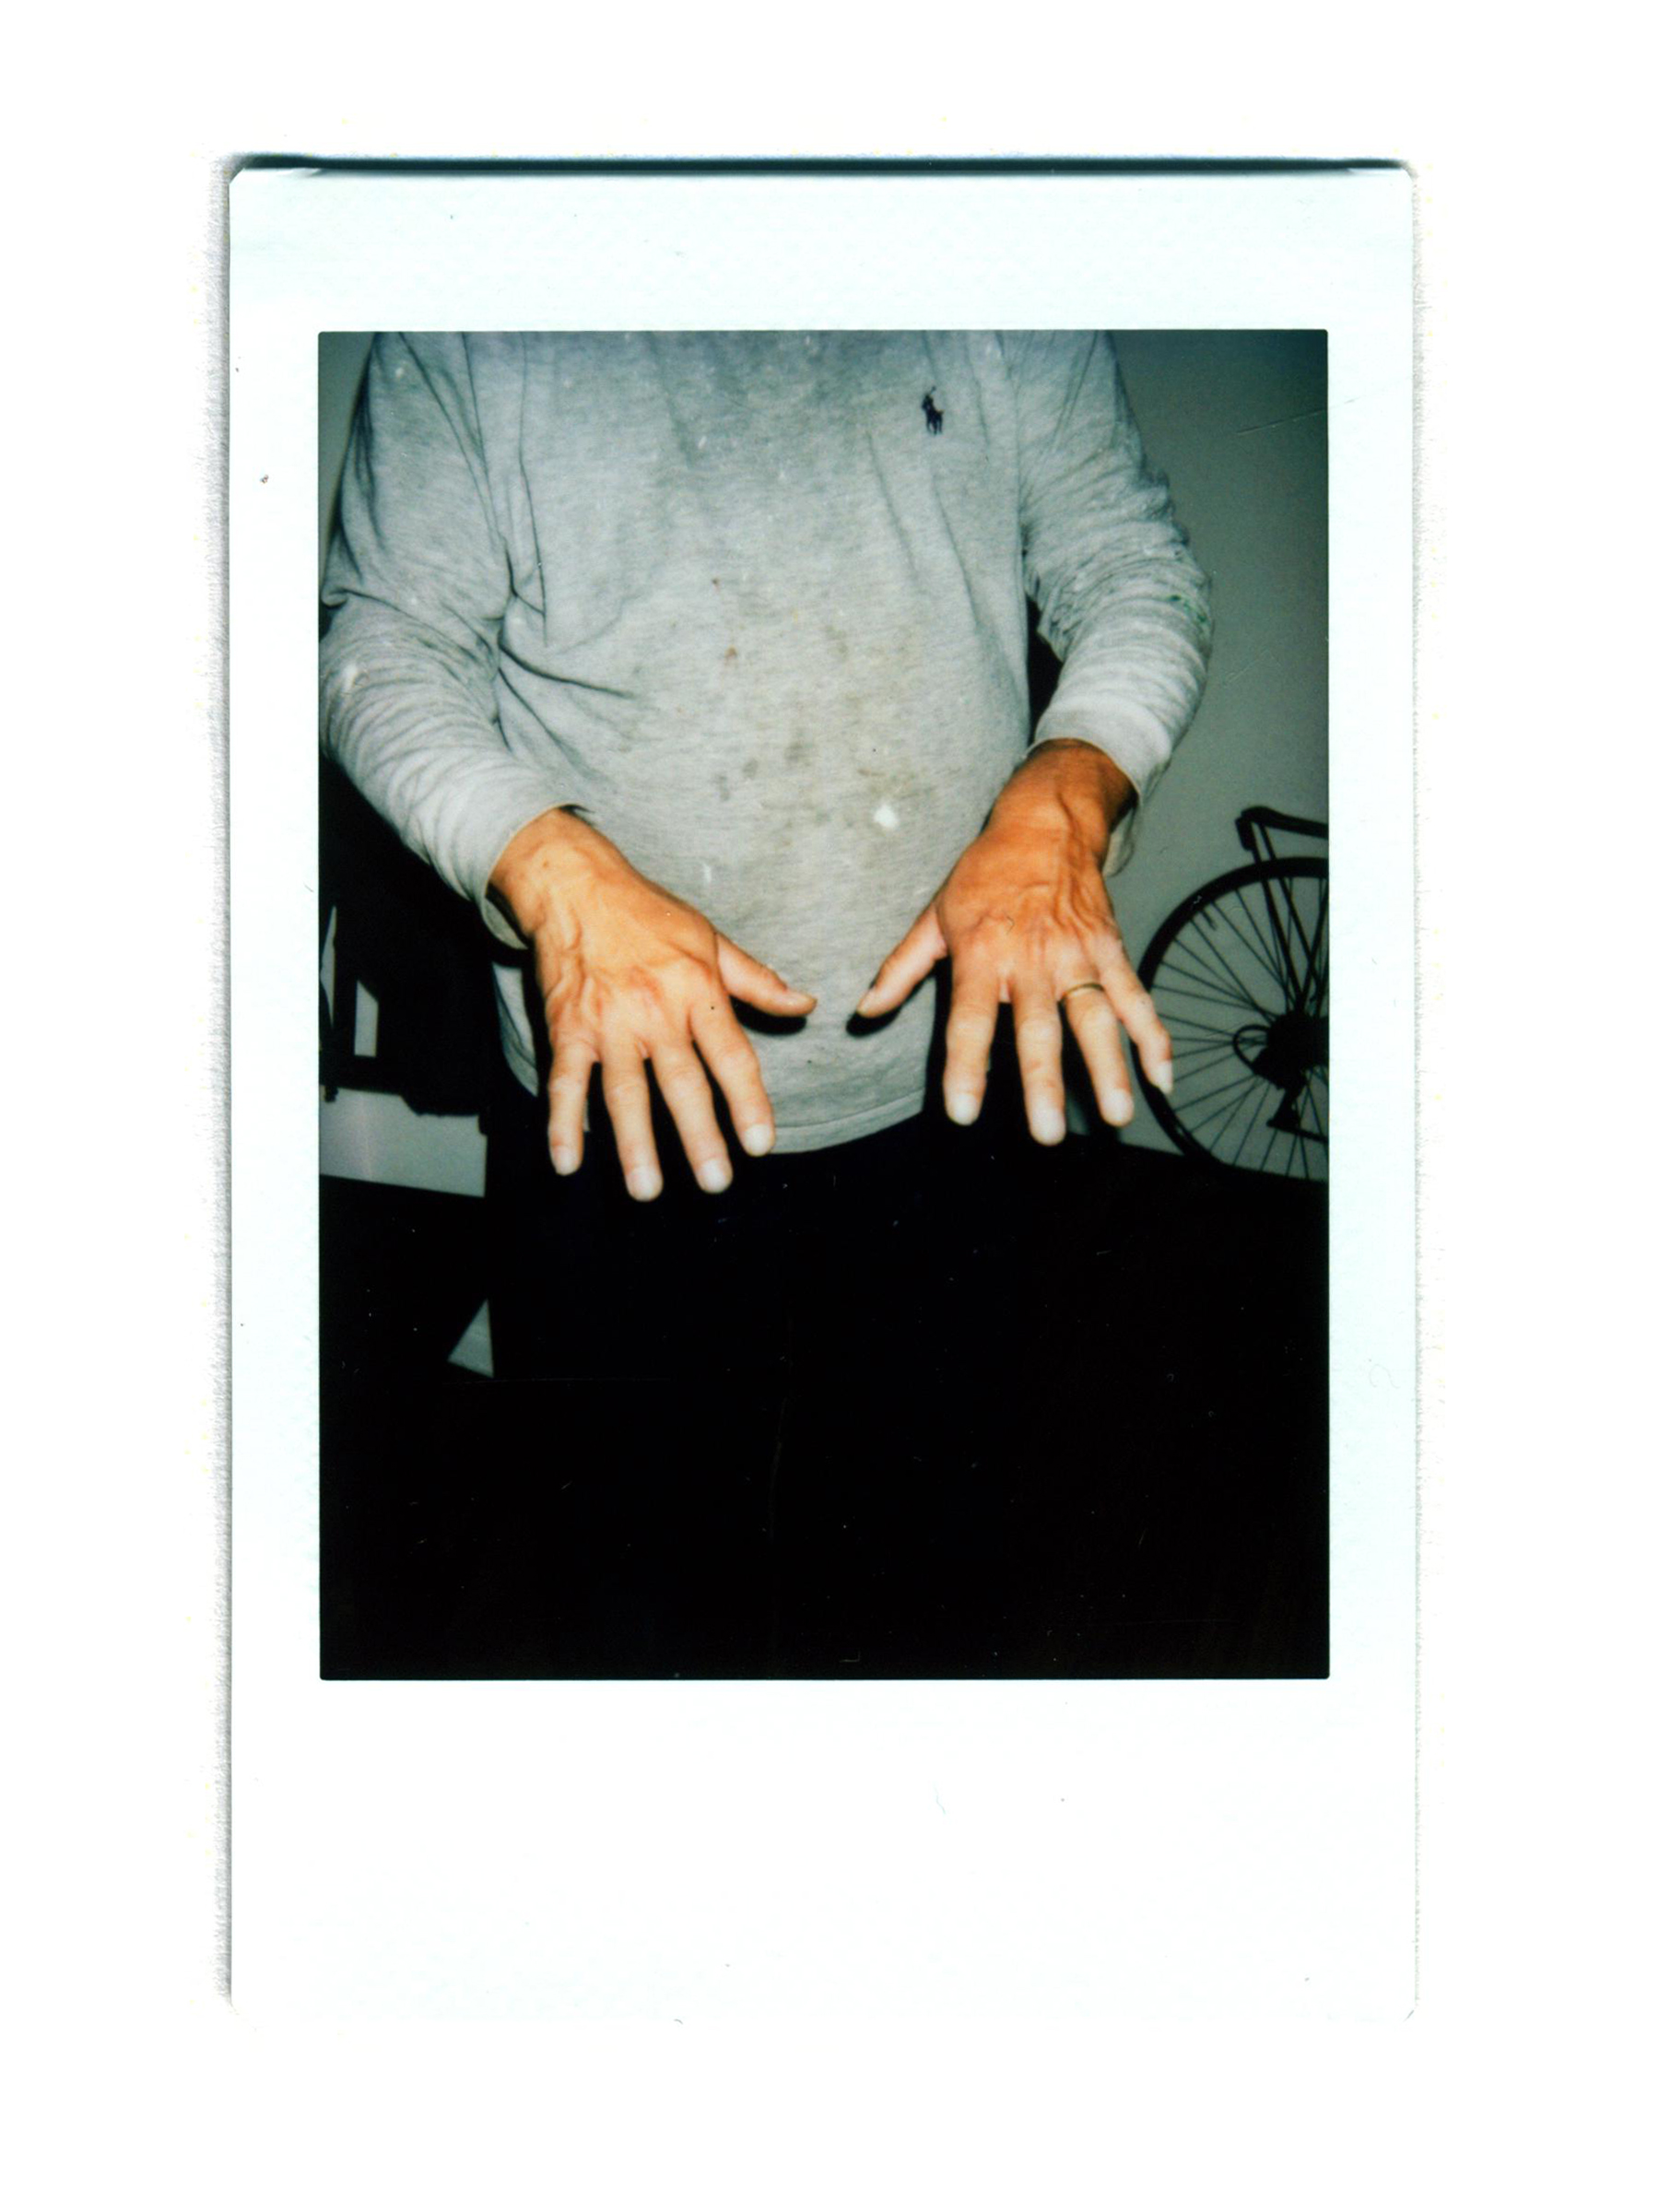 Maurito's Hands